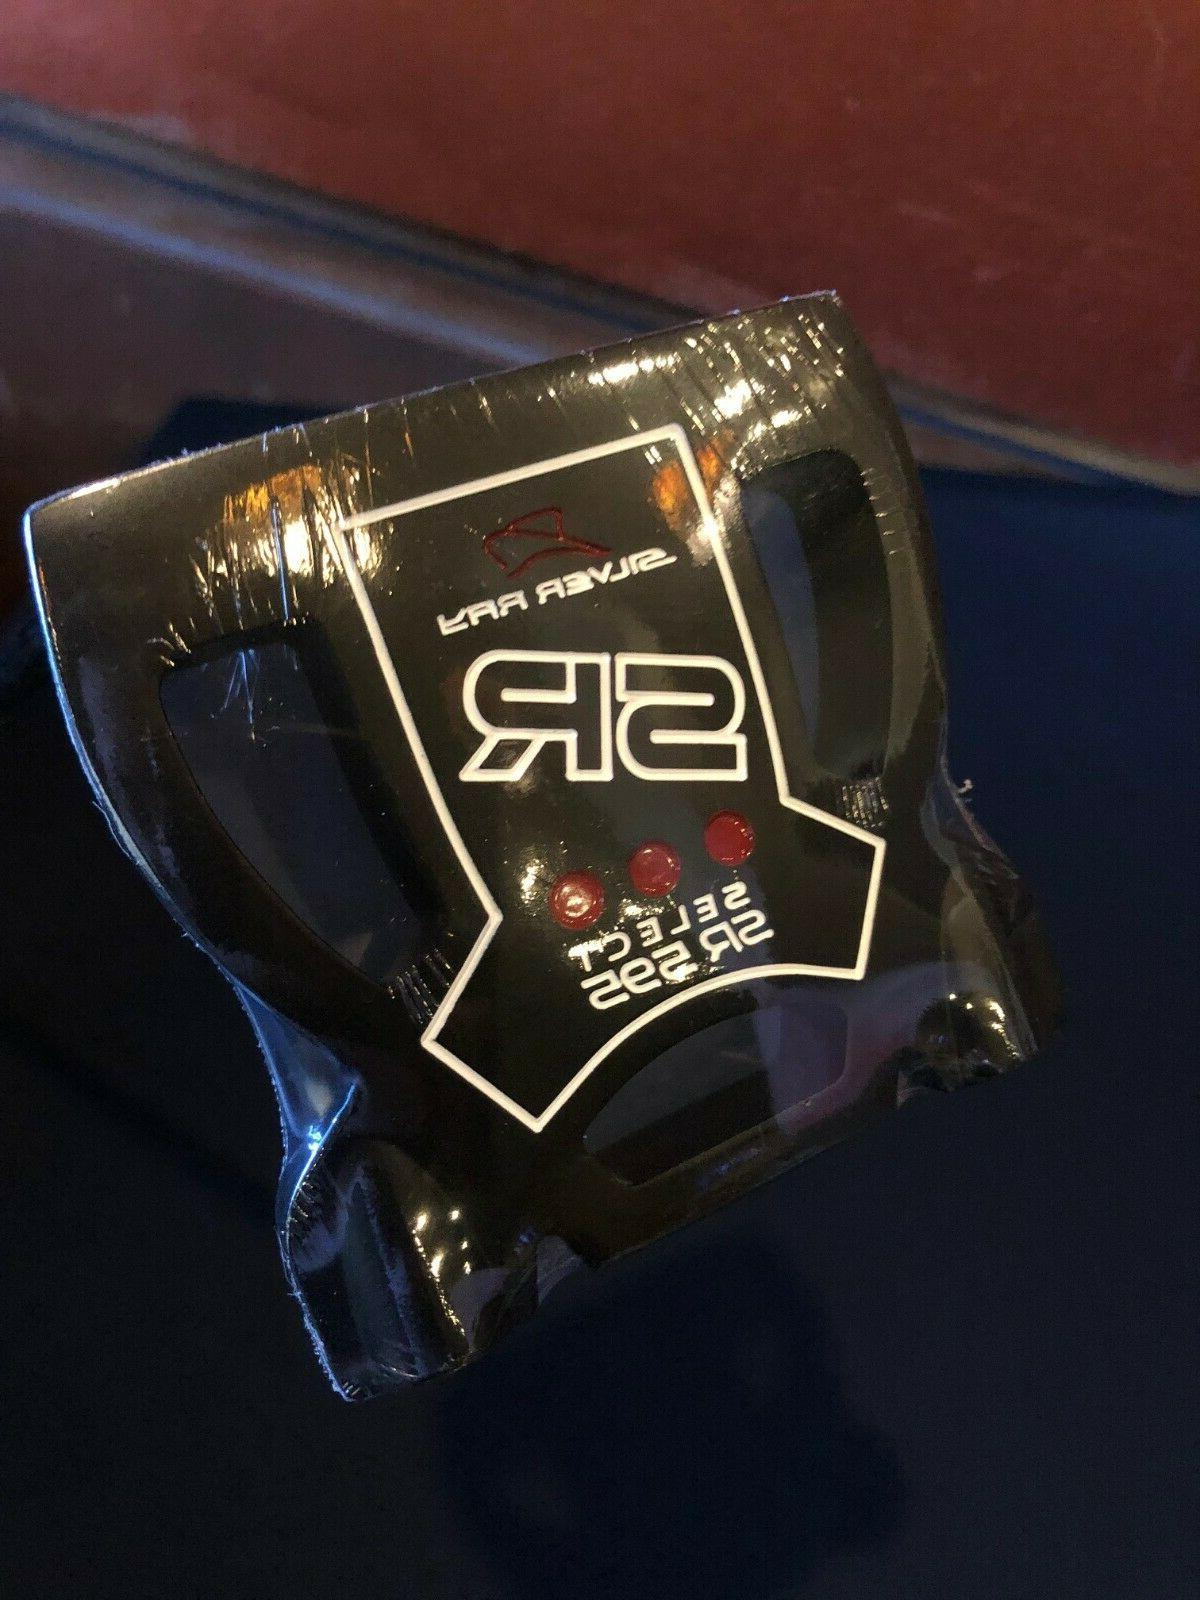 new silver ray sr595 putter